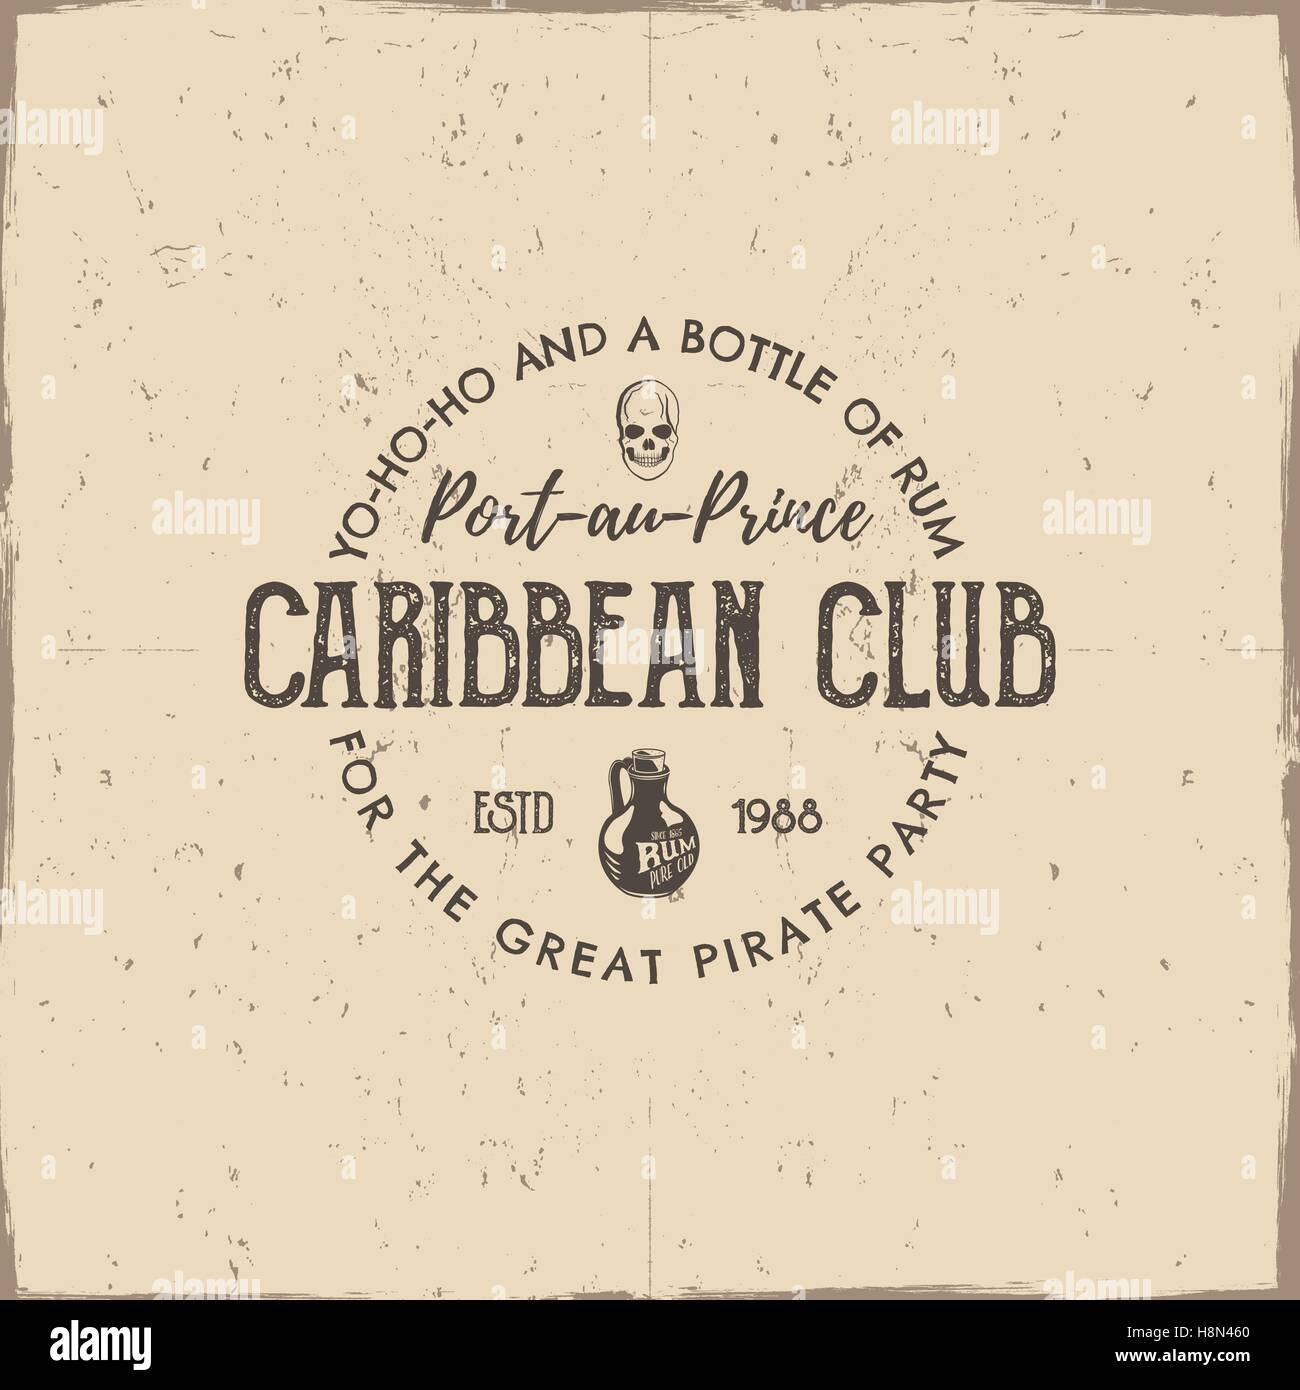 Vintage handcrafted label emblem caribbean club logo template vintage handcrafted label emblem caribbean club logo template sketching filled style pirate and sea symbols old rum bottle pirate skull retro stamp maxwellsz